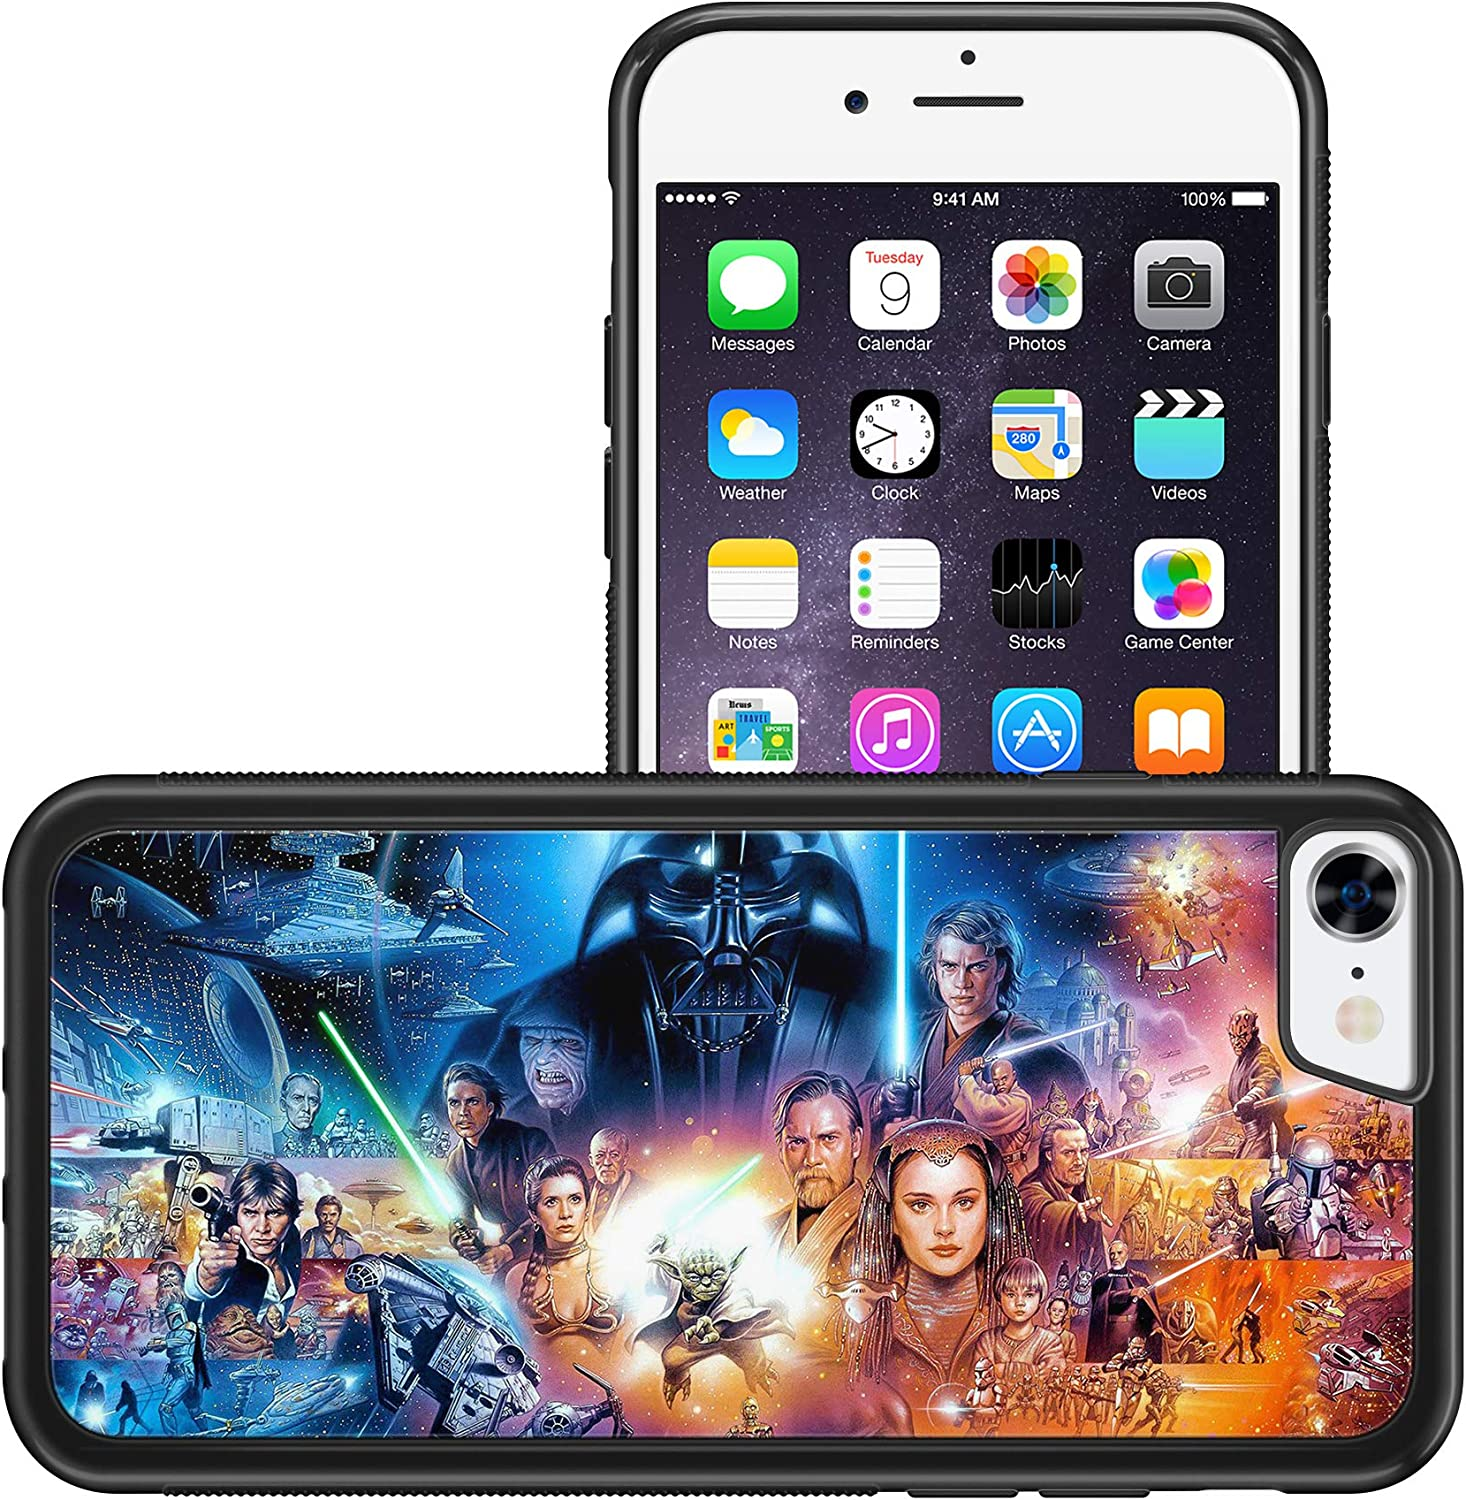 Action Star Wars Characters Wallpaper Bumper Phone Case Iphone 7 8 Amazon Co Uk Electronics